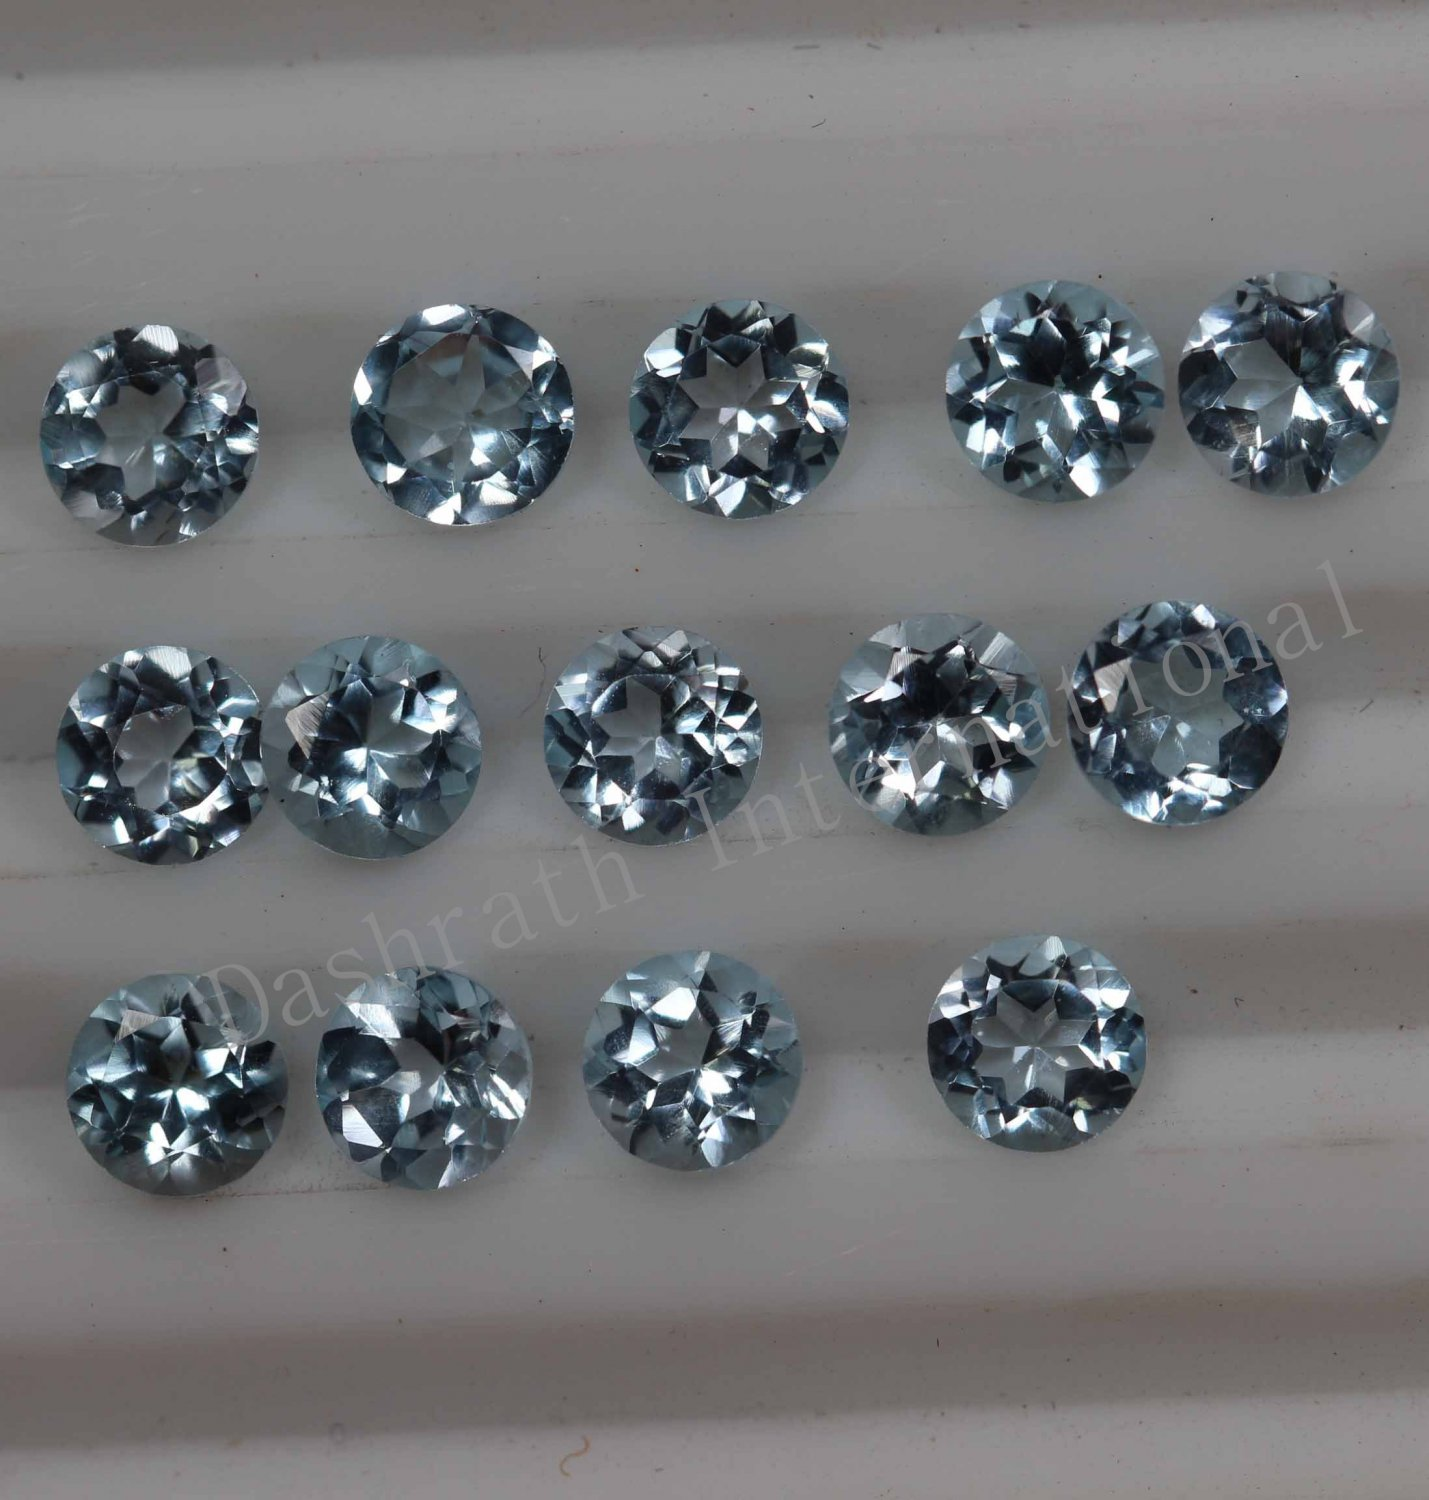 3mmNatural Sky Blue Topaz Faceted Cut Round 5 Pieces Lot Blue Color  Top Quality Loose Gemstone